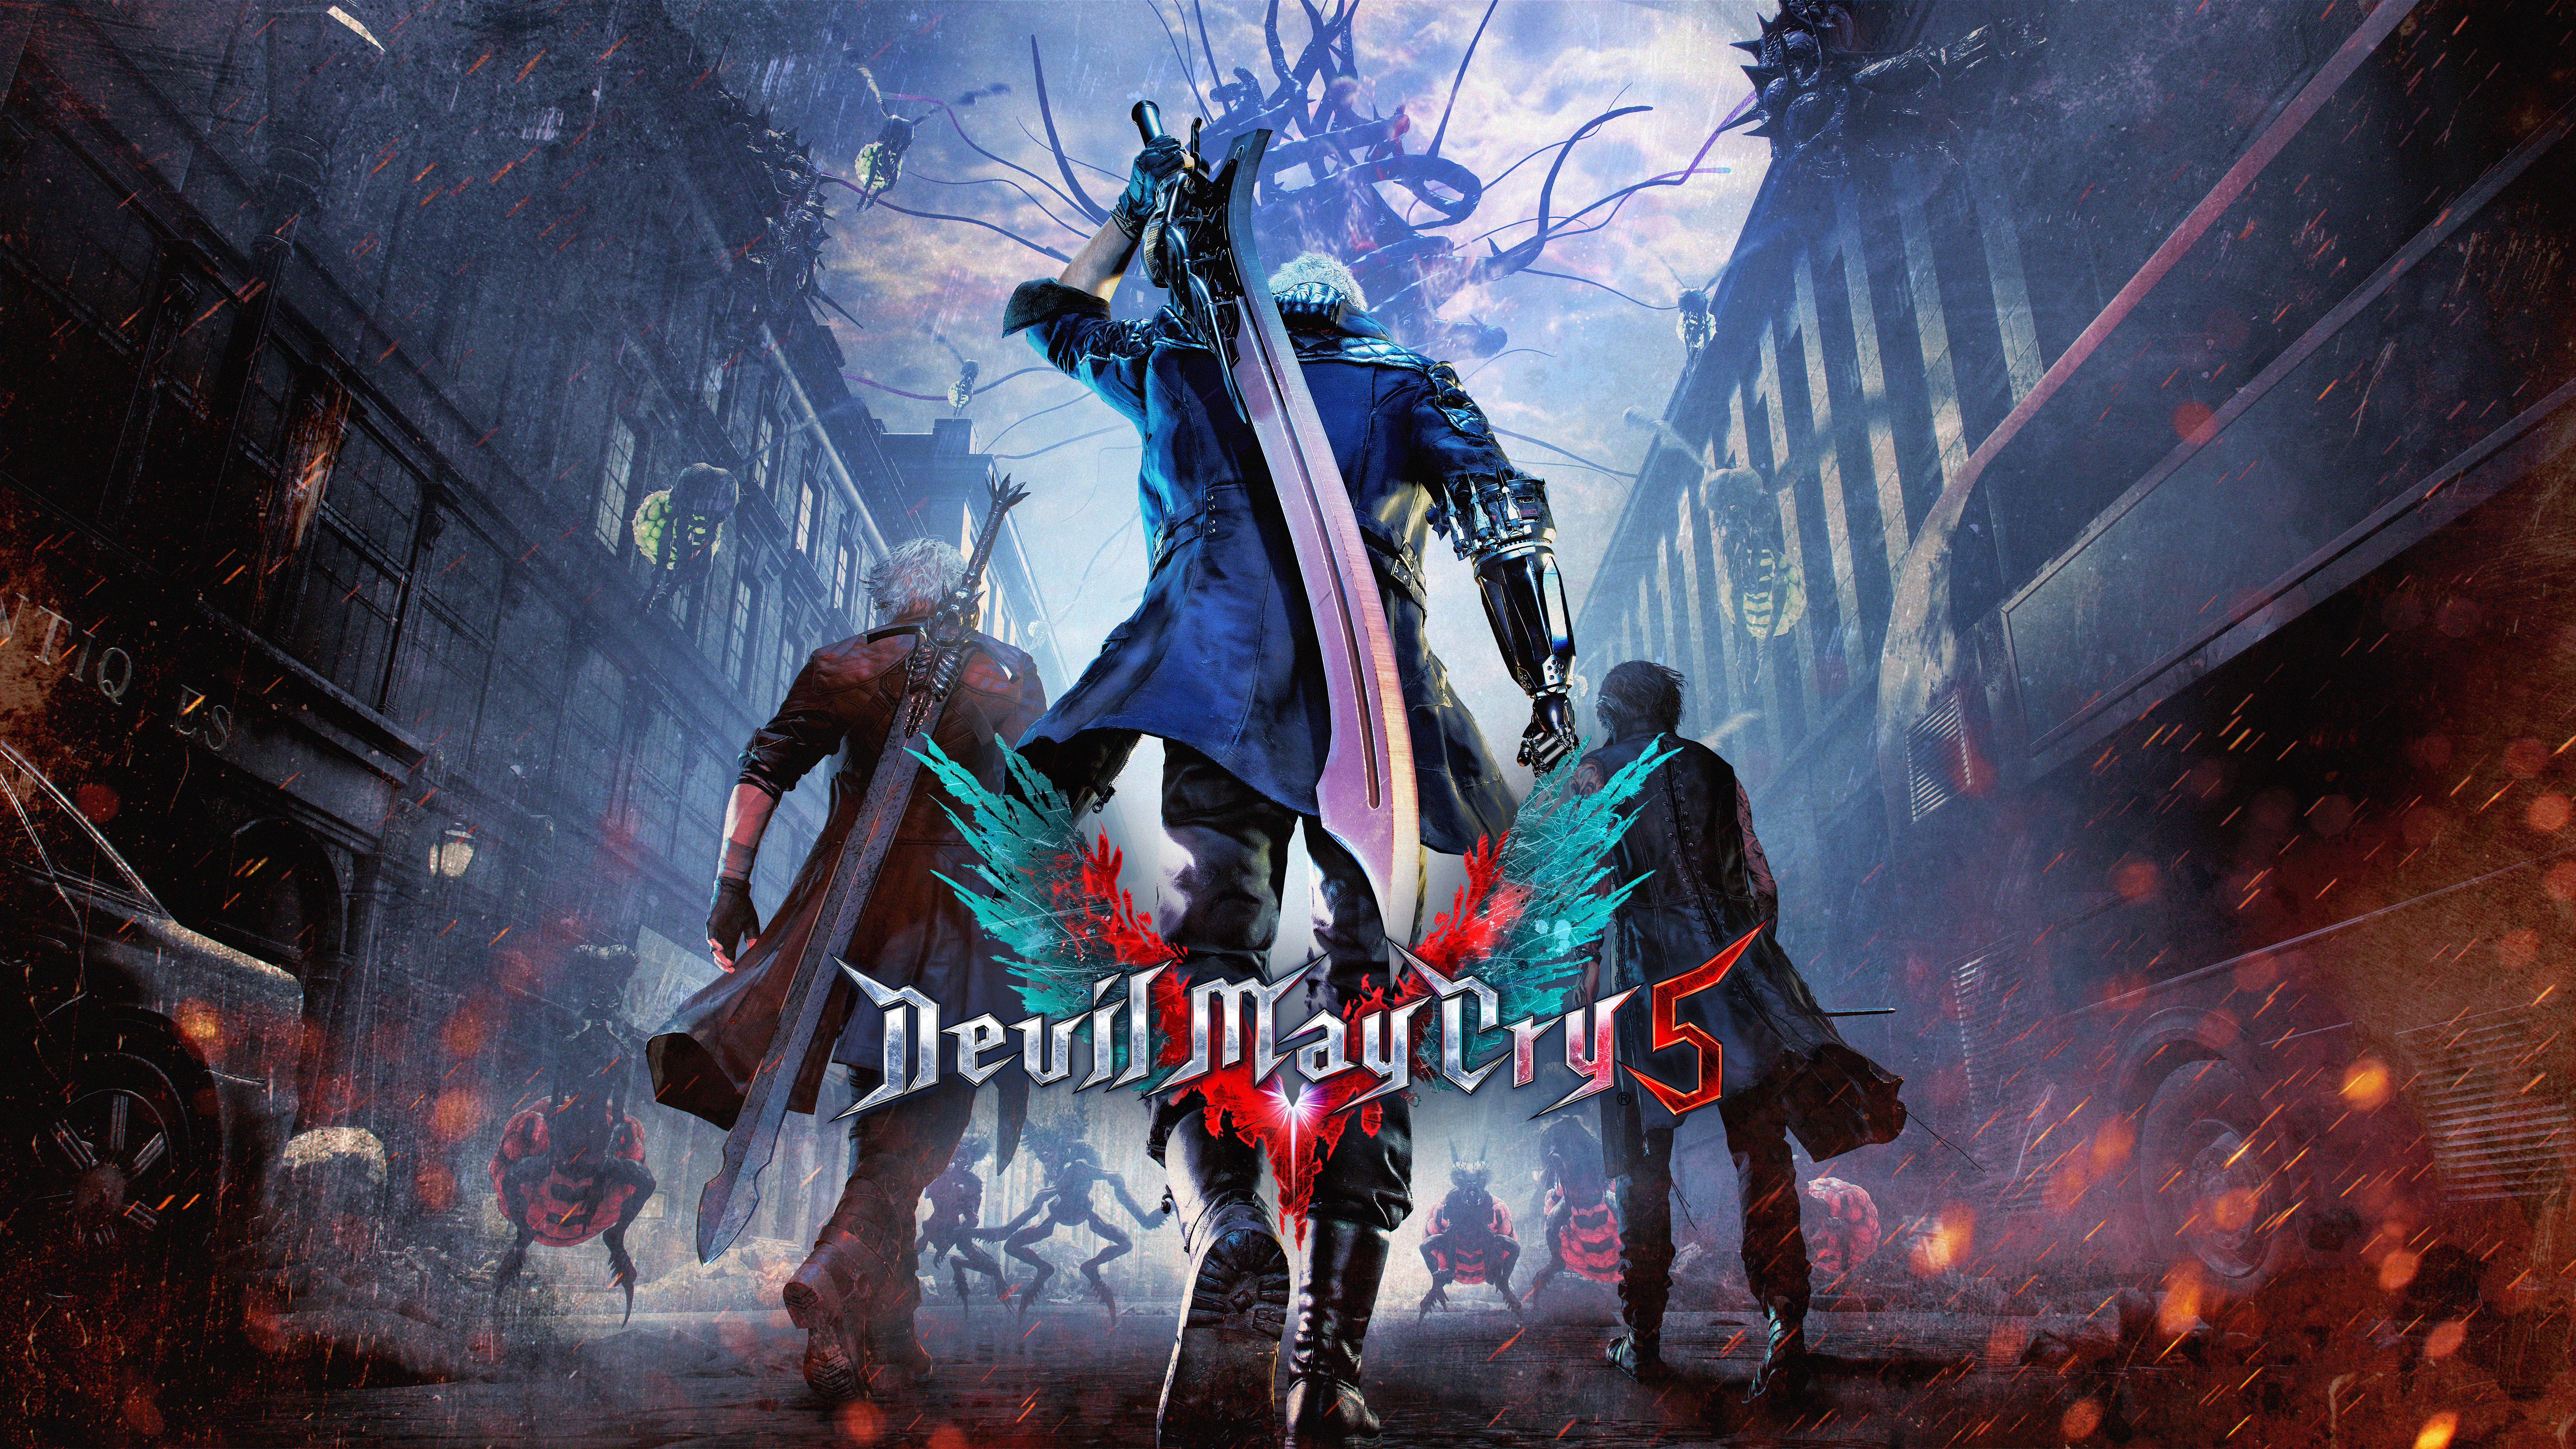 devil may cry 5 8k, hd games, 4k wallpapers, images, backgrounds